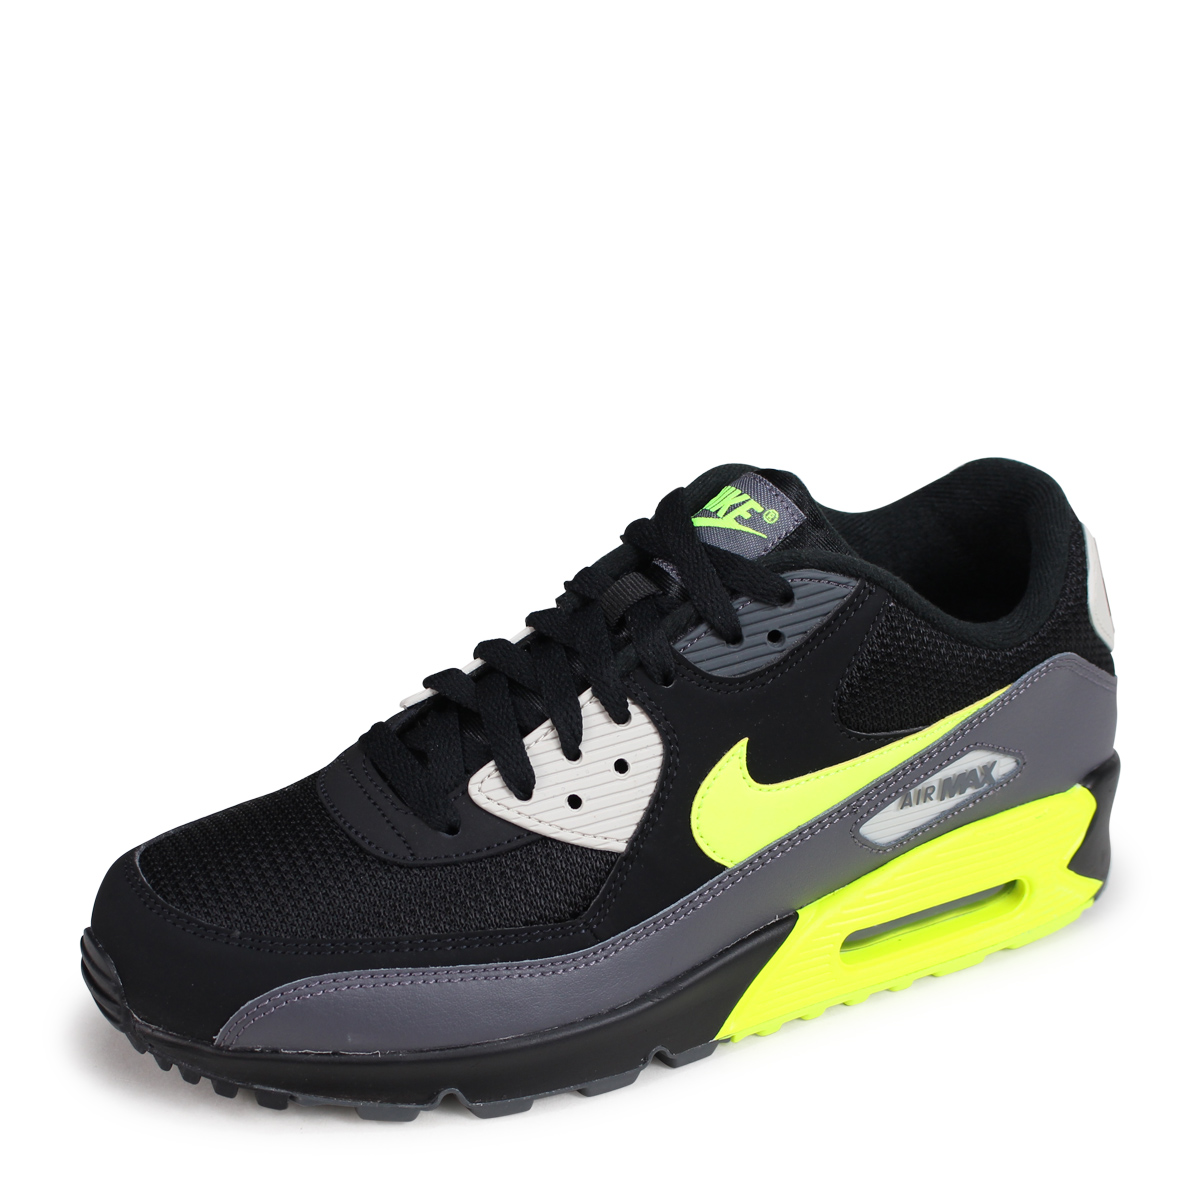 cheap for discount 52c41 c594d Nike NIKE Air Max 90 essential sneakers men AIR MAX 90 ESSENTIAL AJ1285-015  black [195]